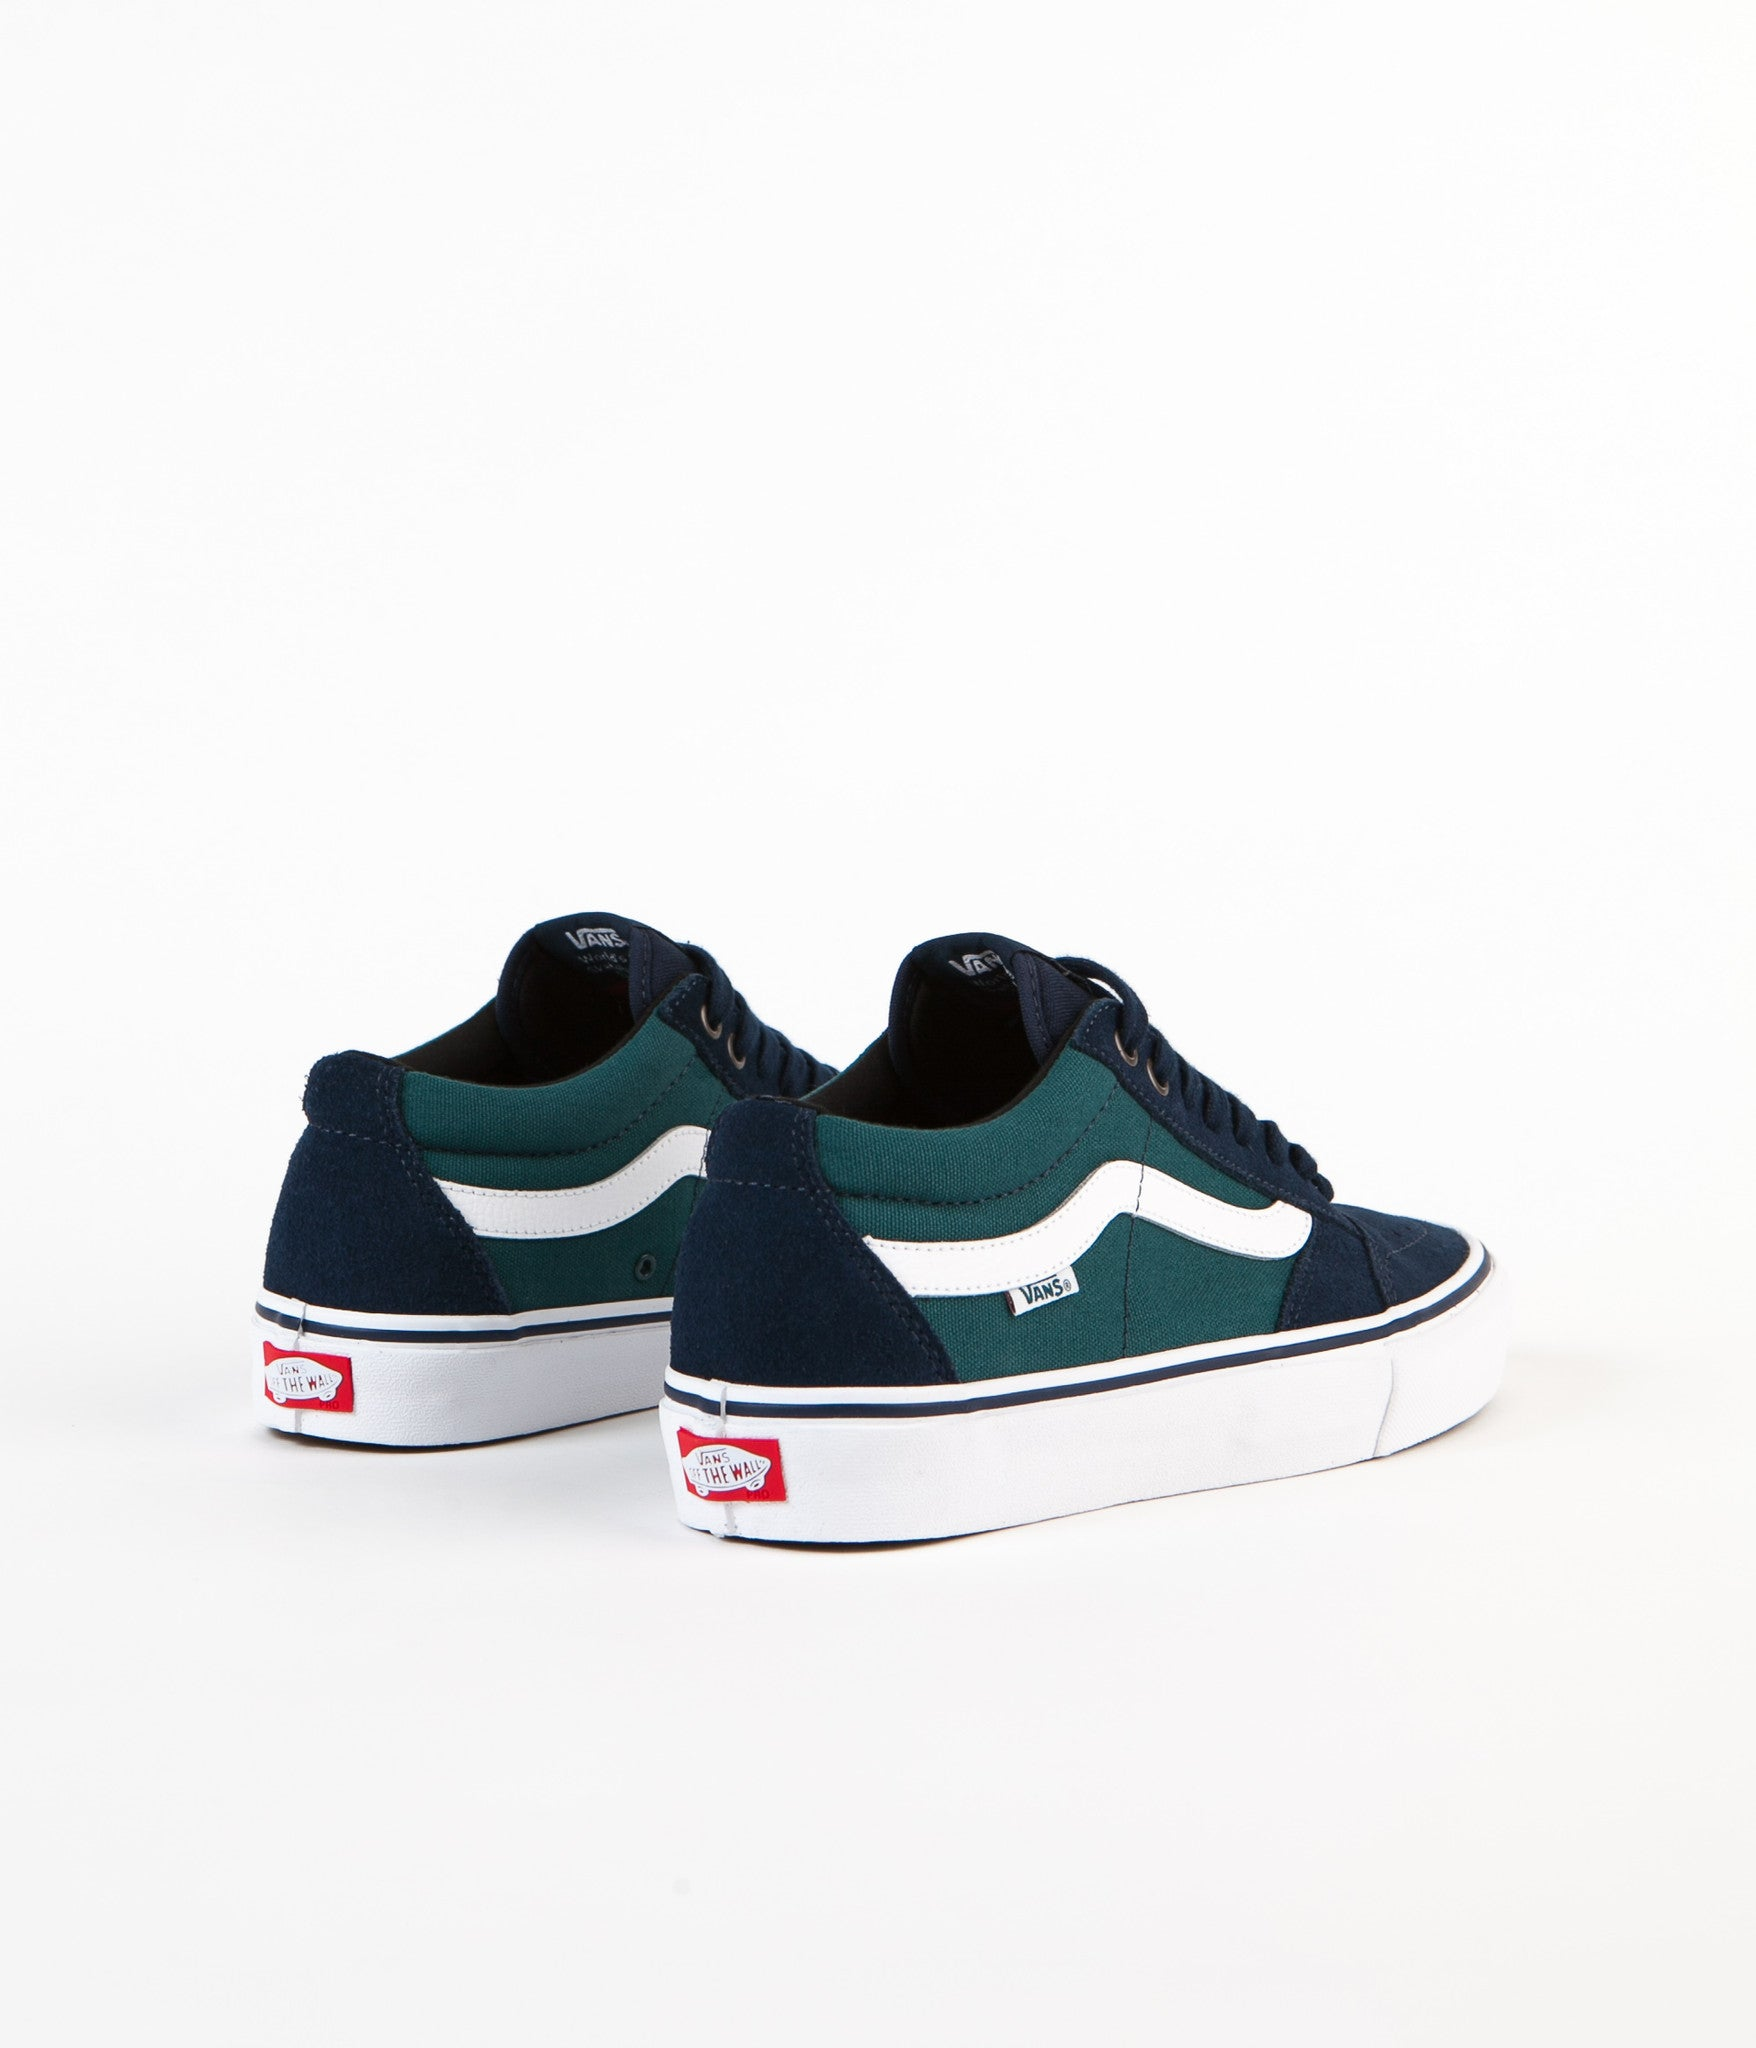 58eb0d87b0 Vans TNT SG Shoes - Dress Blues   Deep Teal